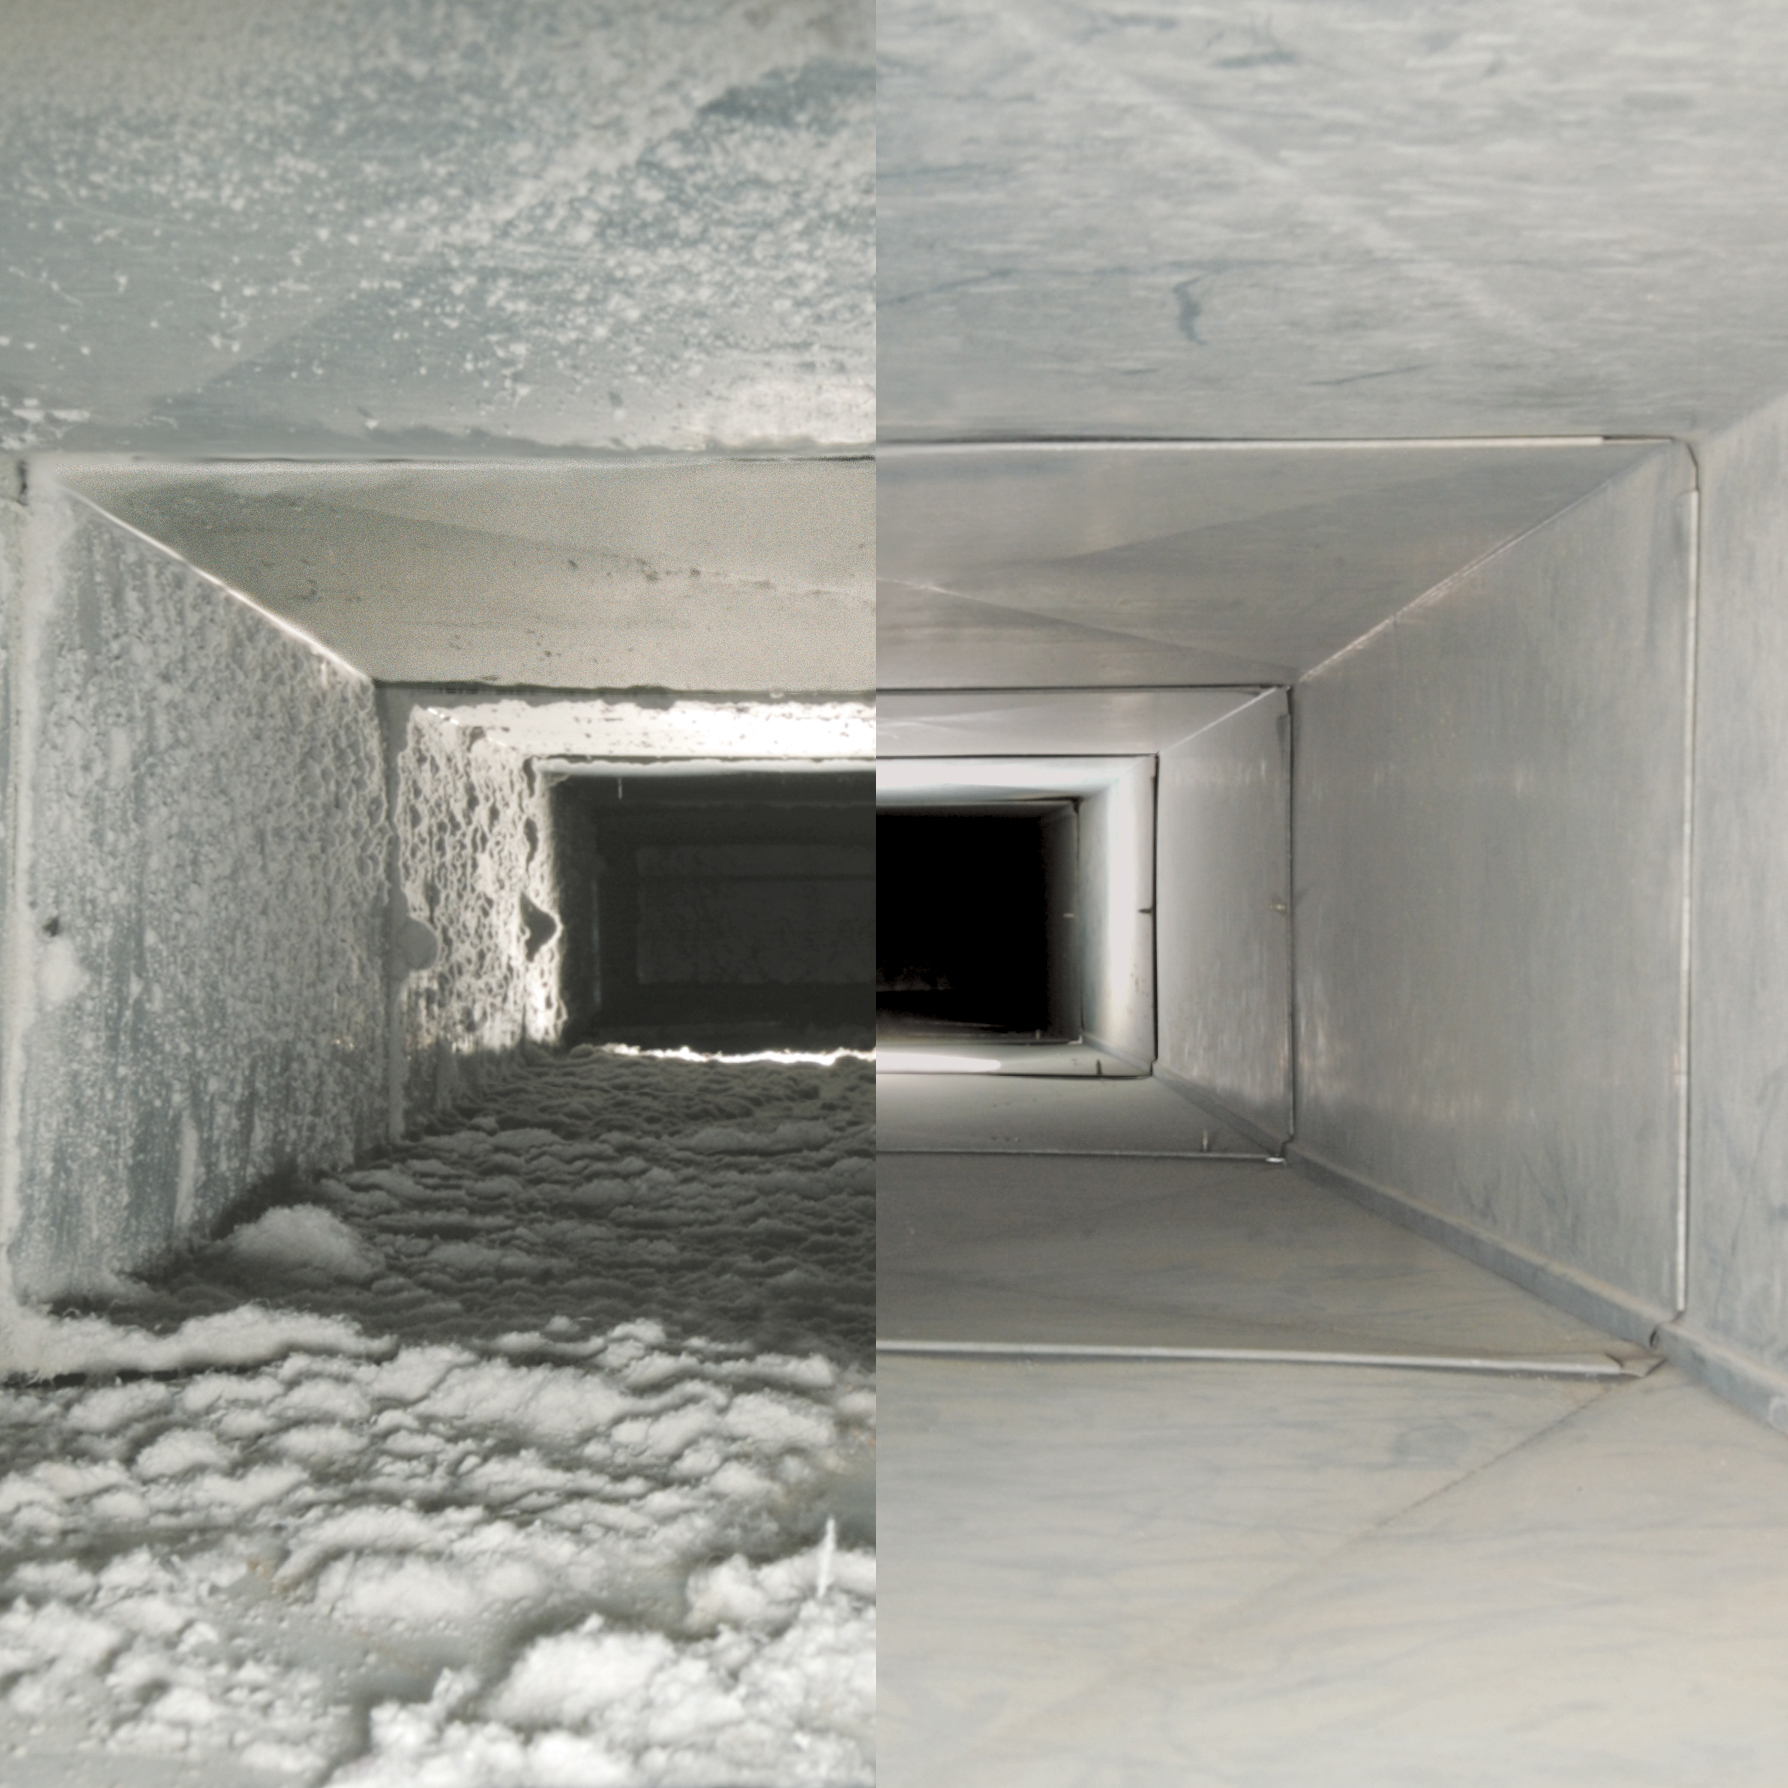 air_duct_beforeandafter_photo